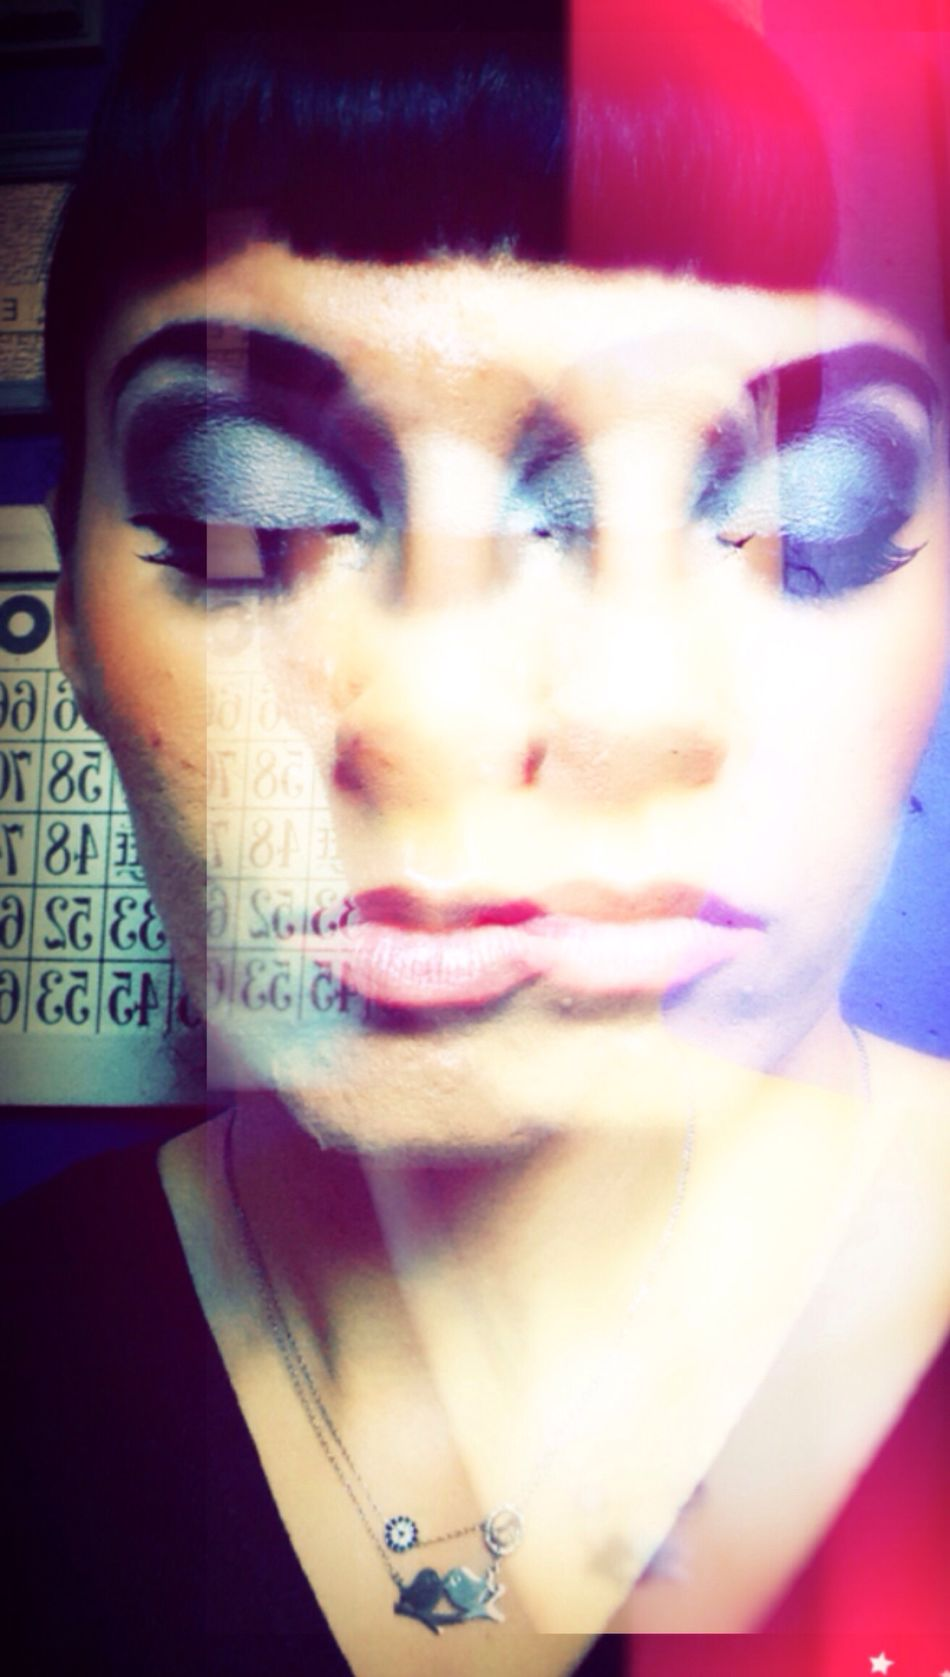 One Person Human Face Close-up Portrait Real People Beautiful Woman Looking At Camera Headshot Young Adult Young Women Beauty Indoors  One Woman Only Human Body Part Adults Only Adult People Day Selfie ✌ Eyesshut Edit Double Exposure